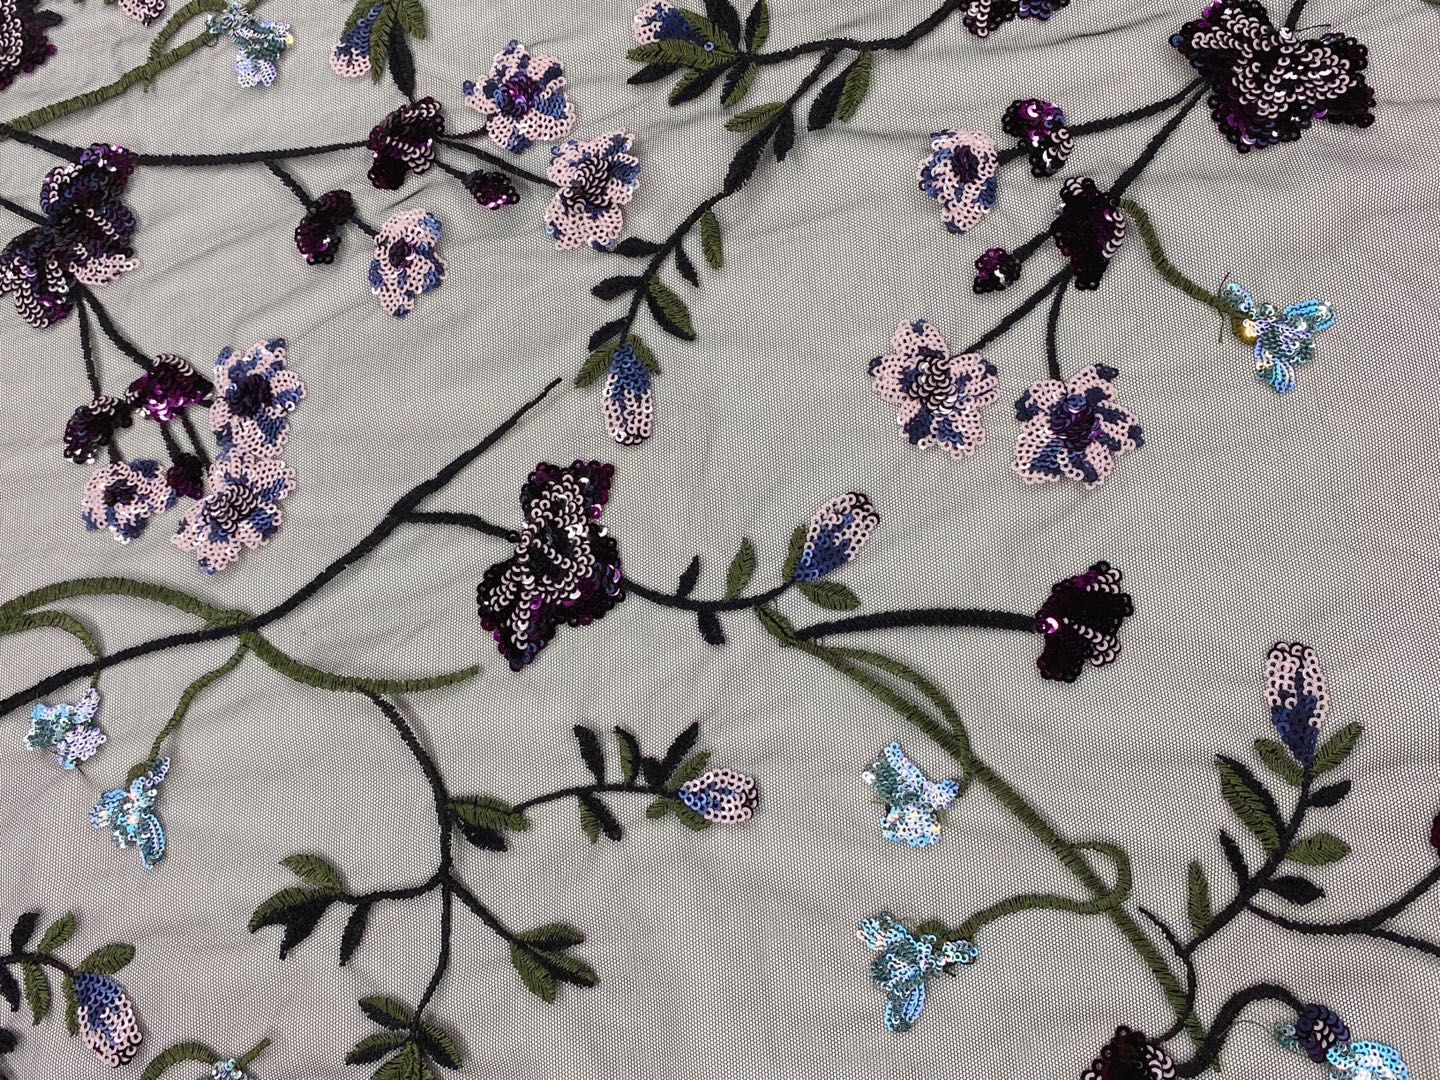 Poly Mesh Multicolor Embroidery Fabric